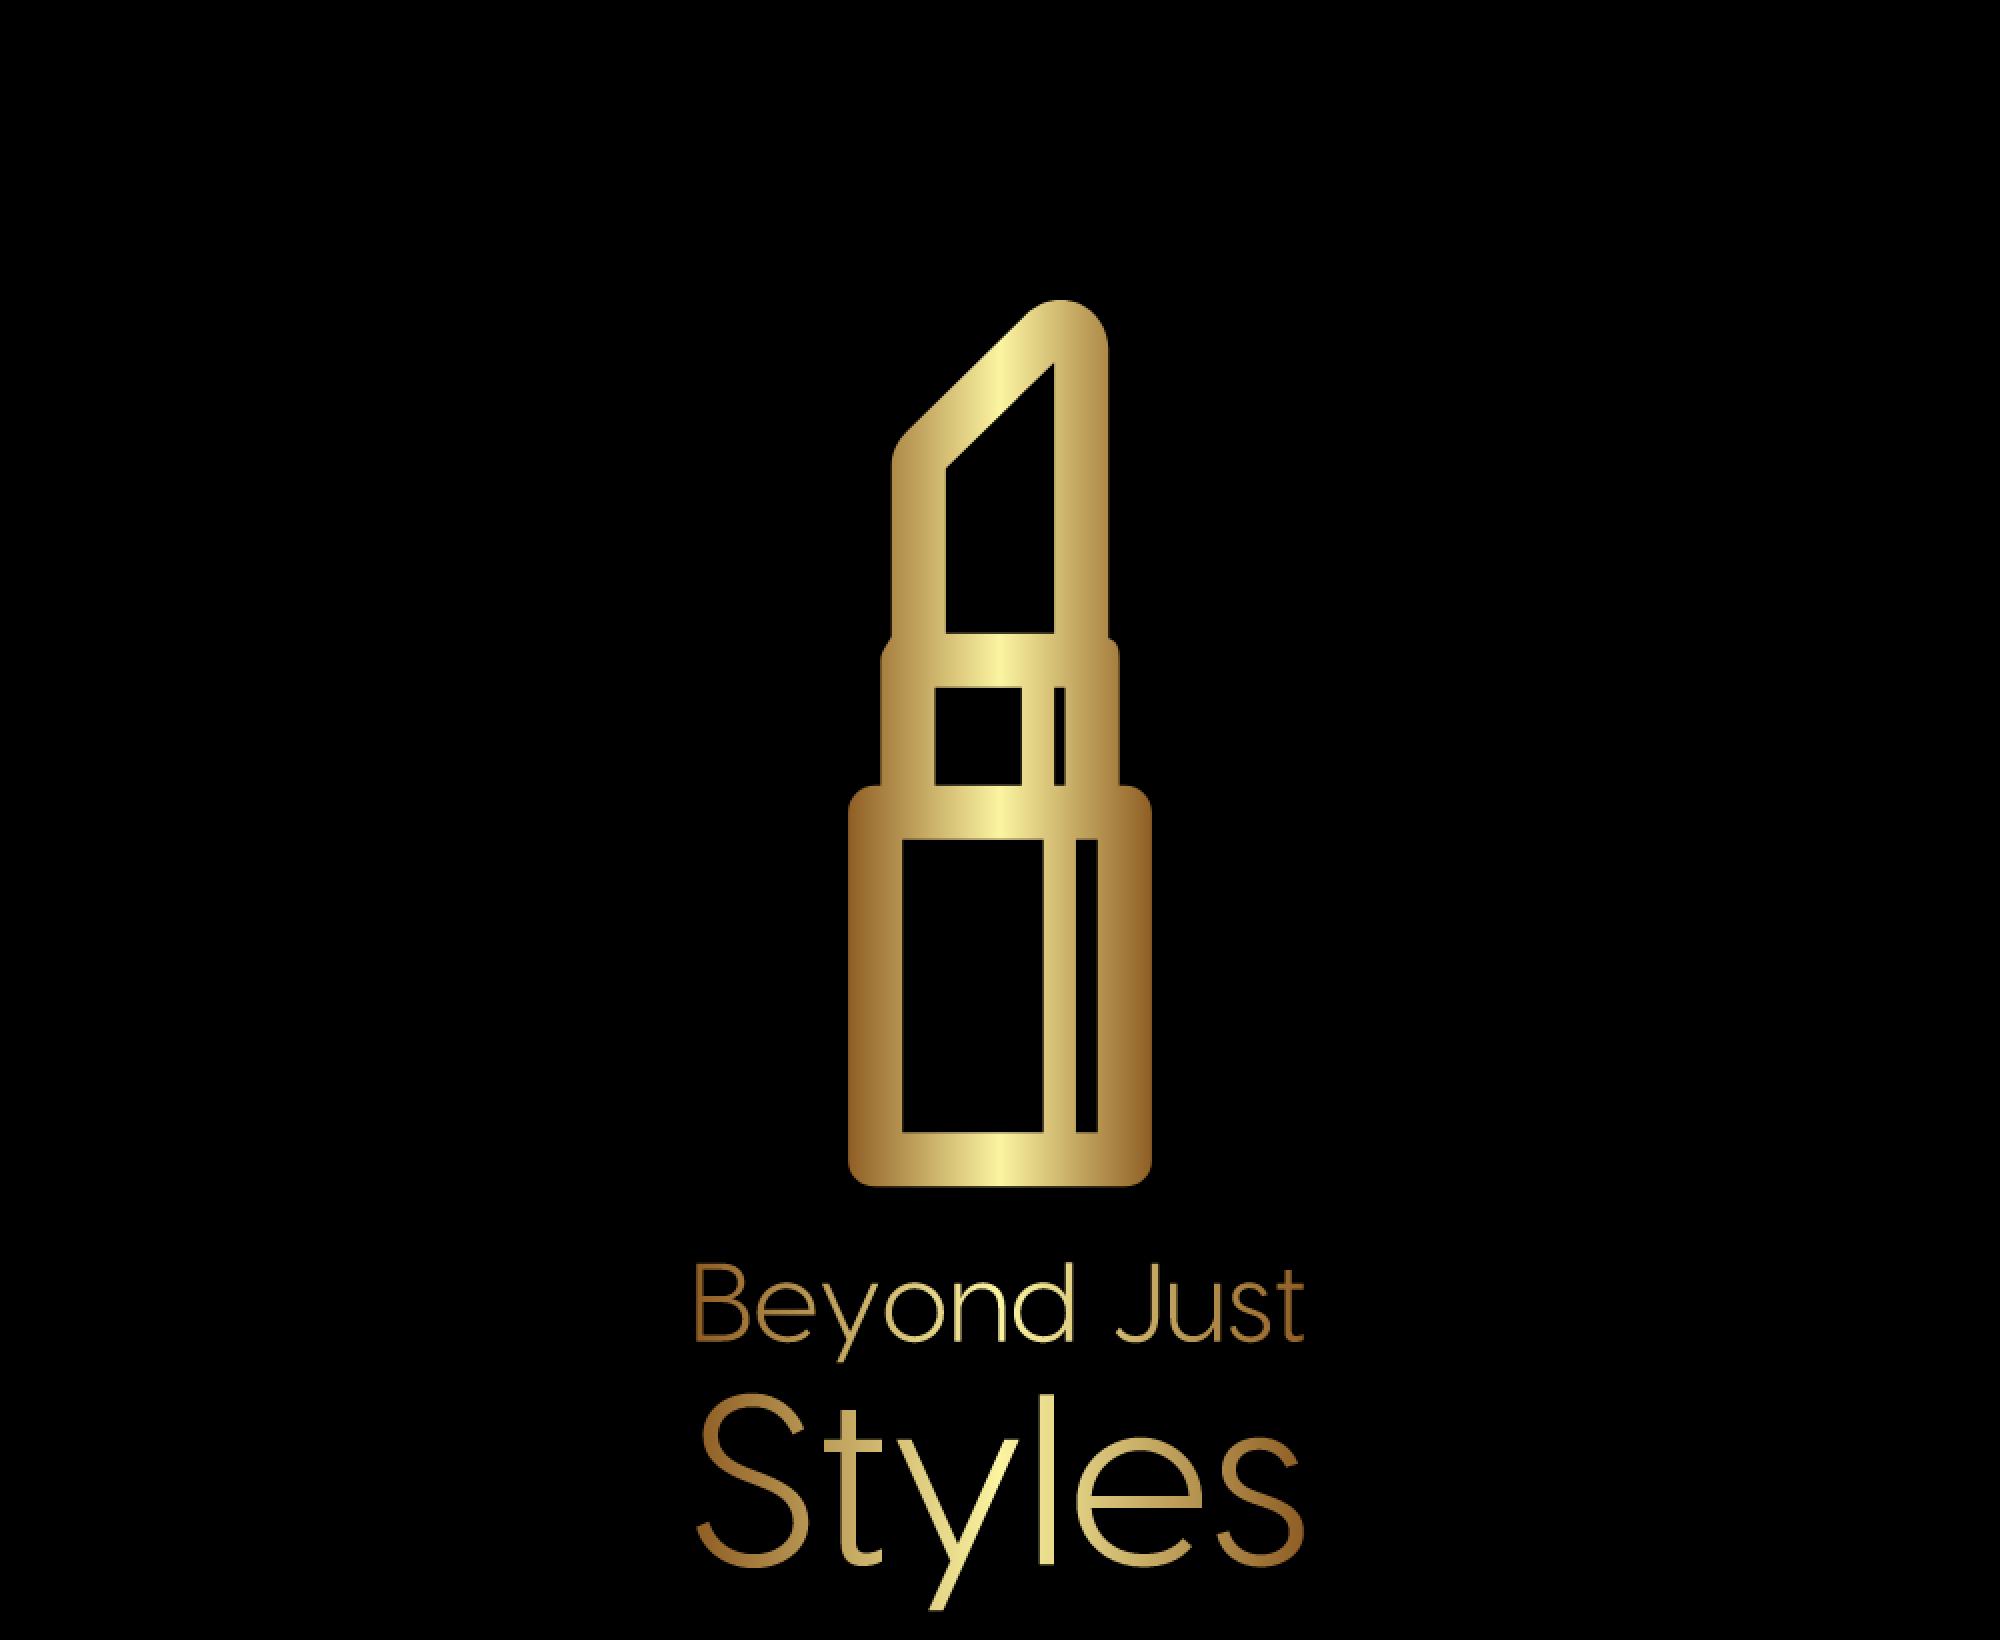 Beyond Just Styles